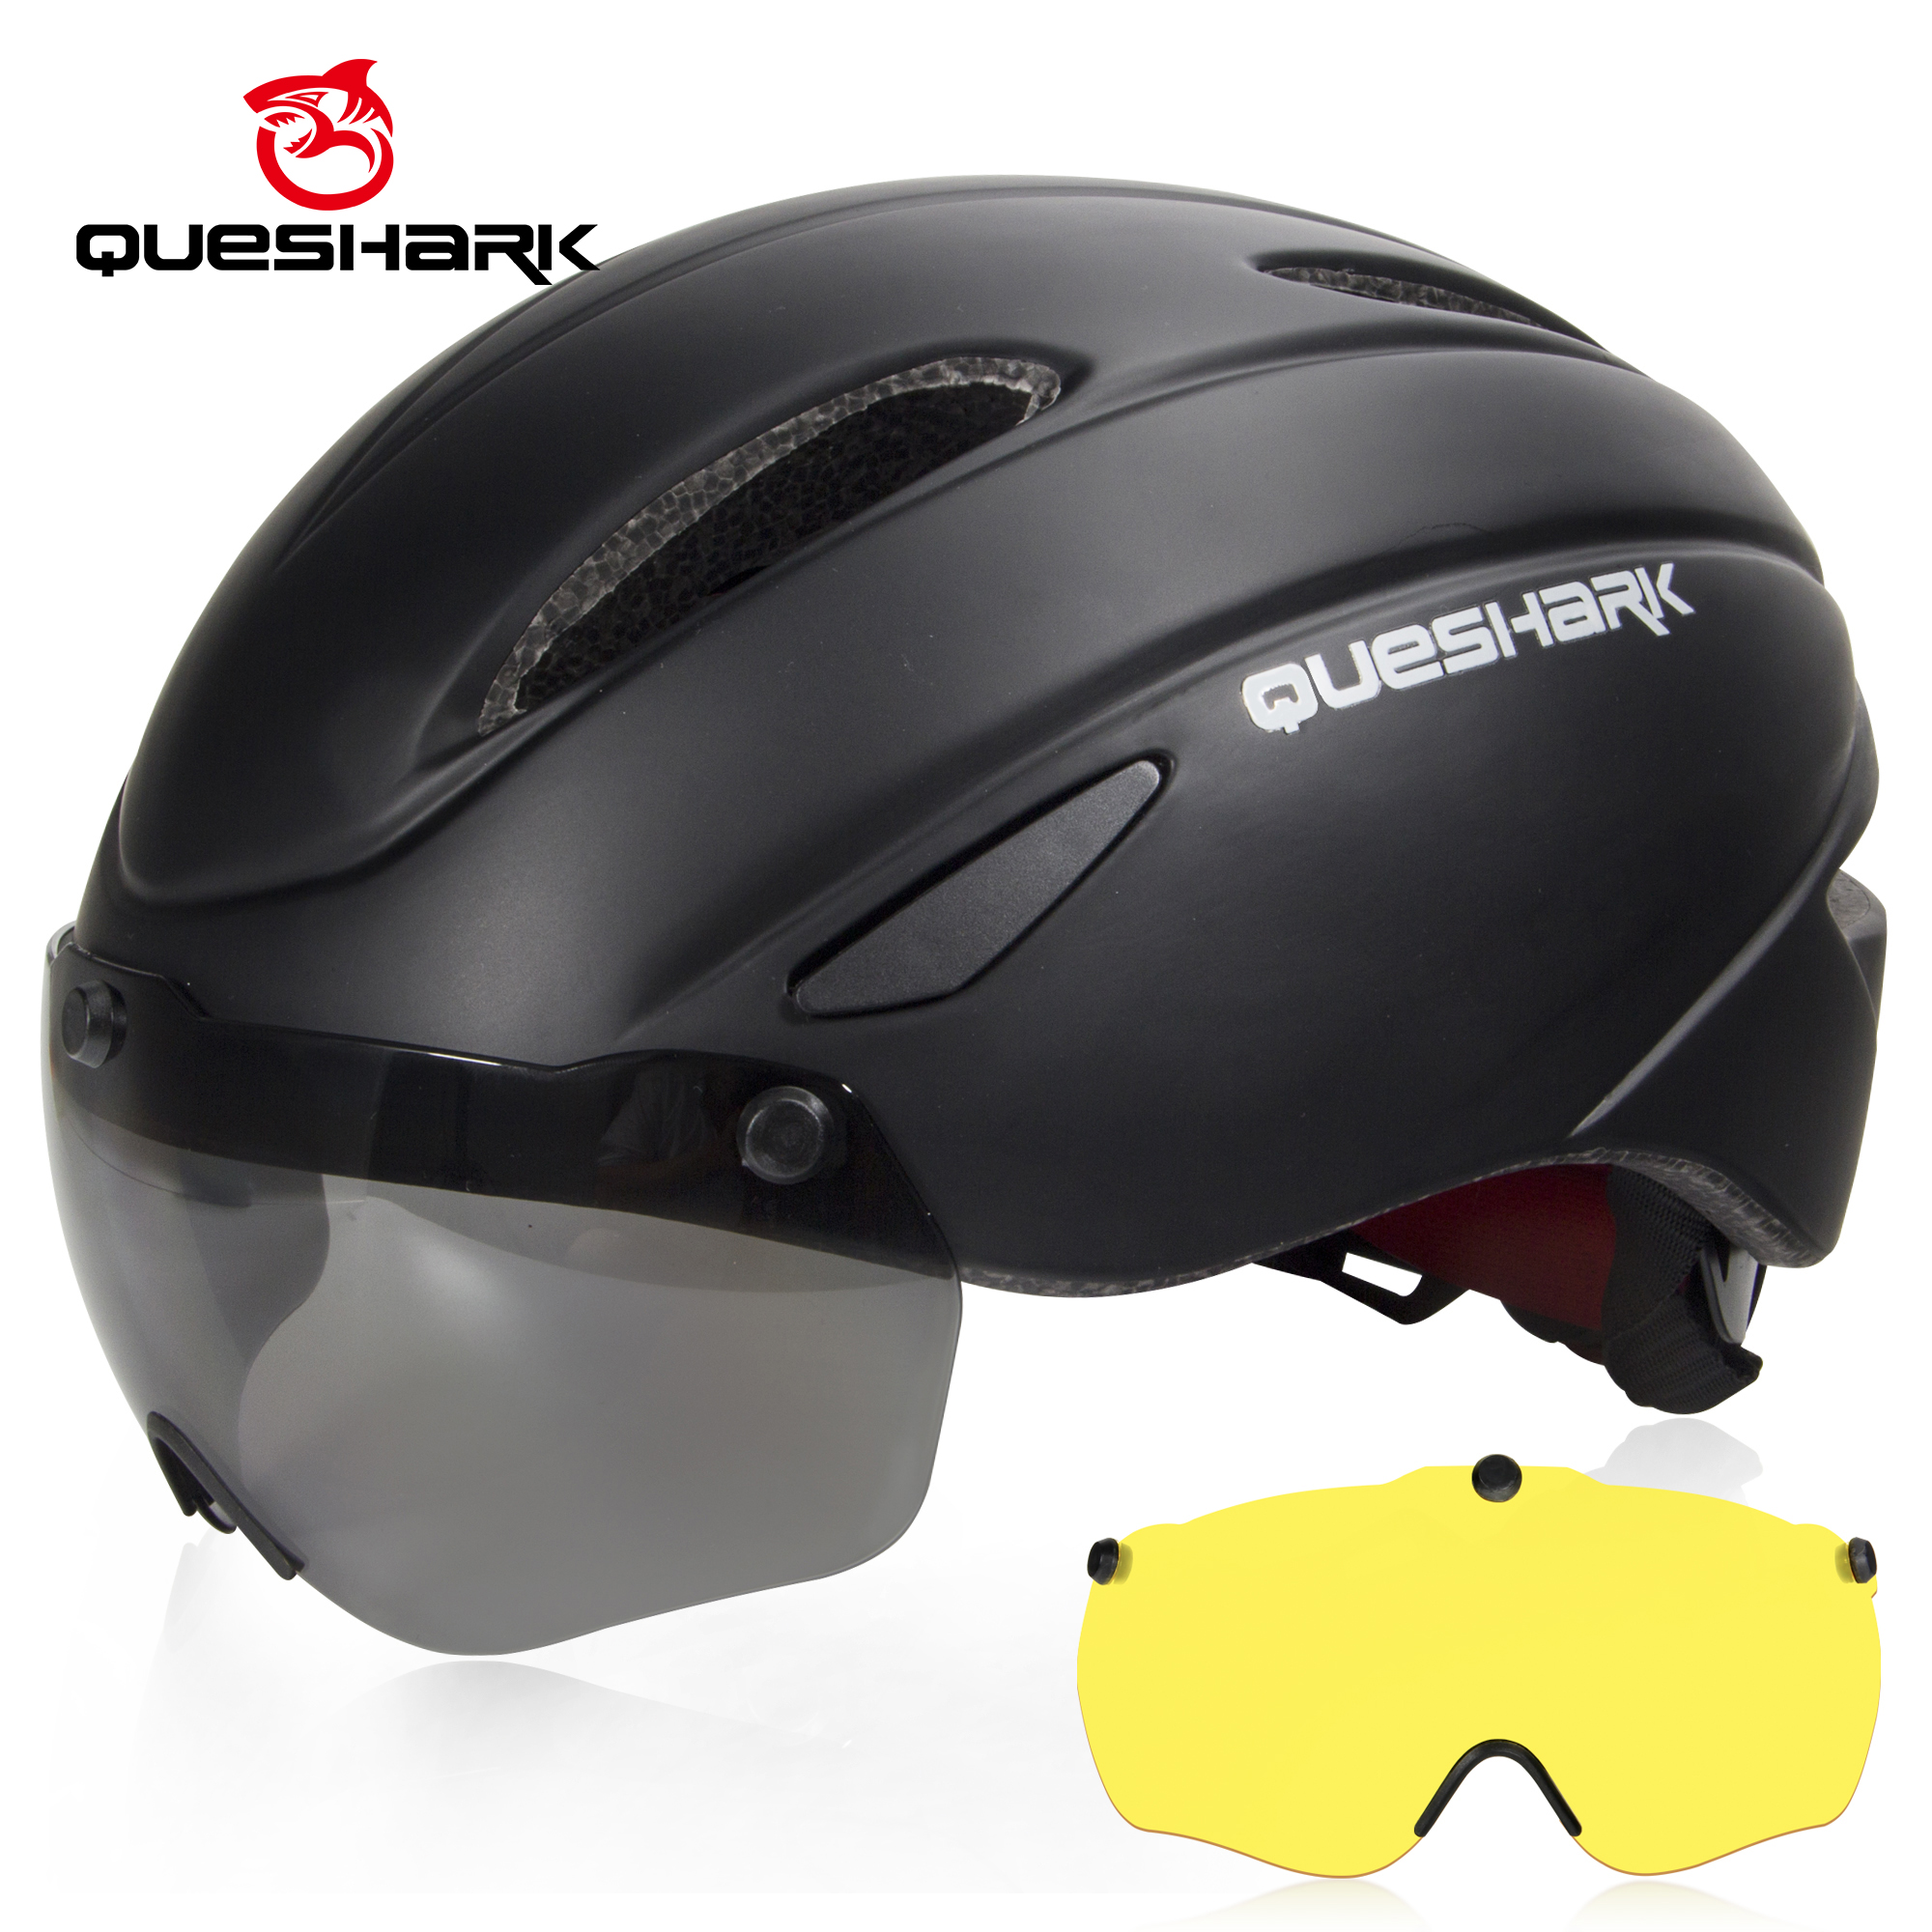 QUESHARK Aero Goggles Bicycle Helmet Safety Racing Cycling Helmets Mountain Road Bike Helmets With Windproof Glasses